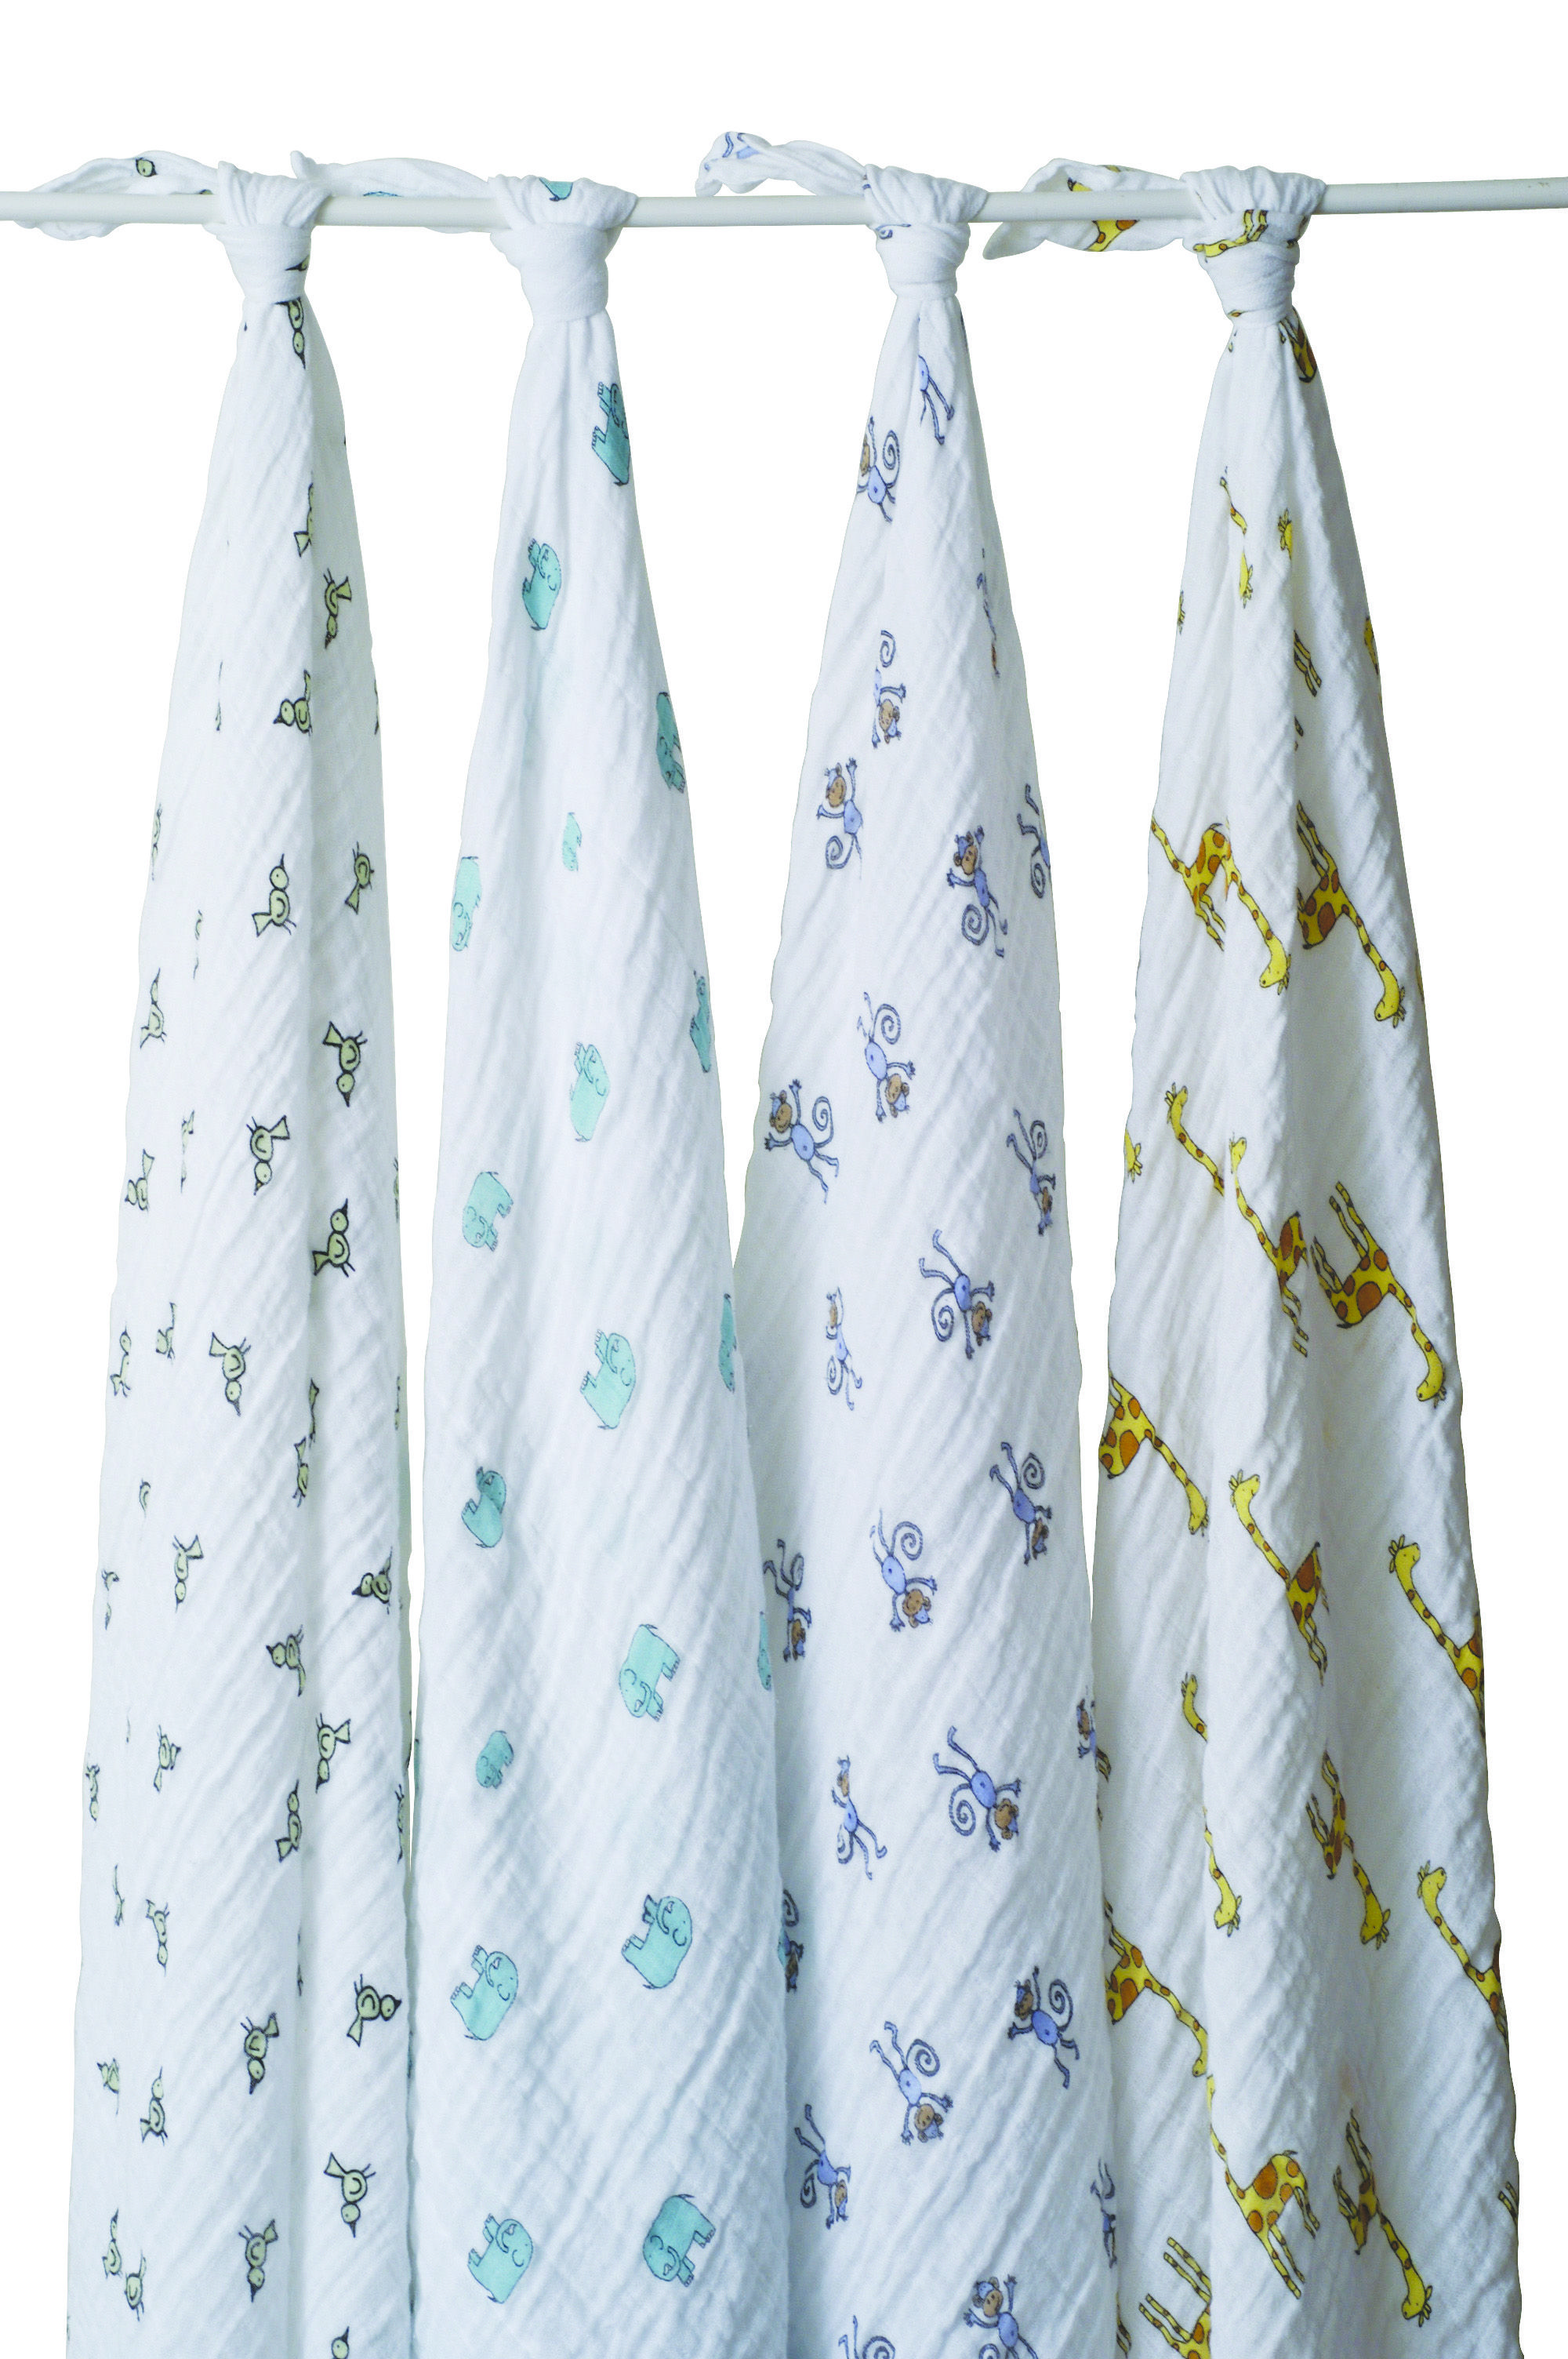 Aden And Anais Swaddle Blankets Amazing Newborn Baby Gifts Australia Jungle Jam Aden And Anais 4 Pack Design Decoration